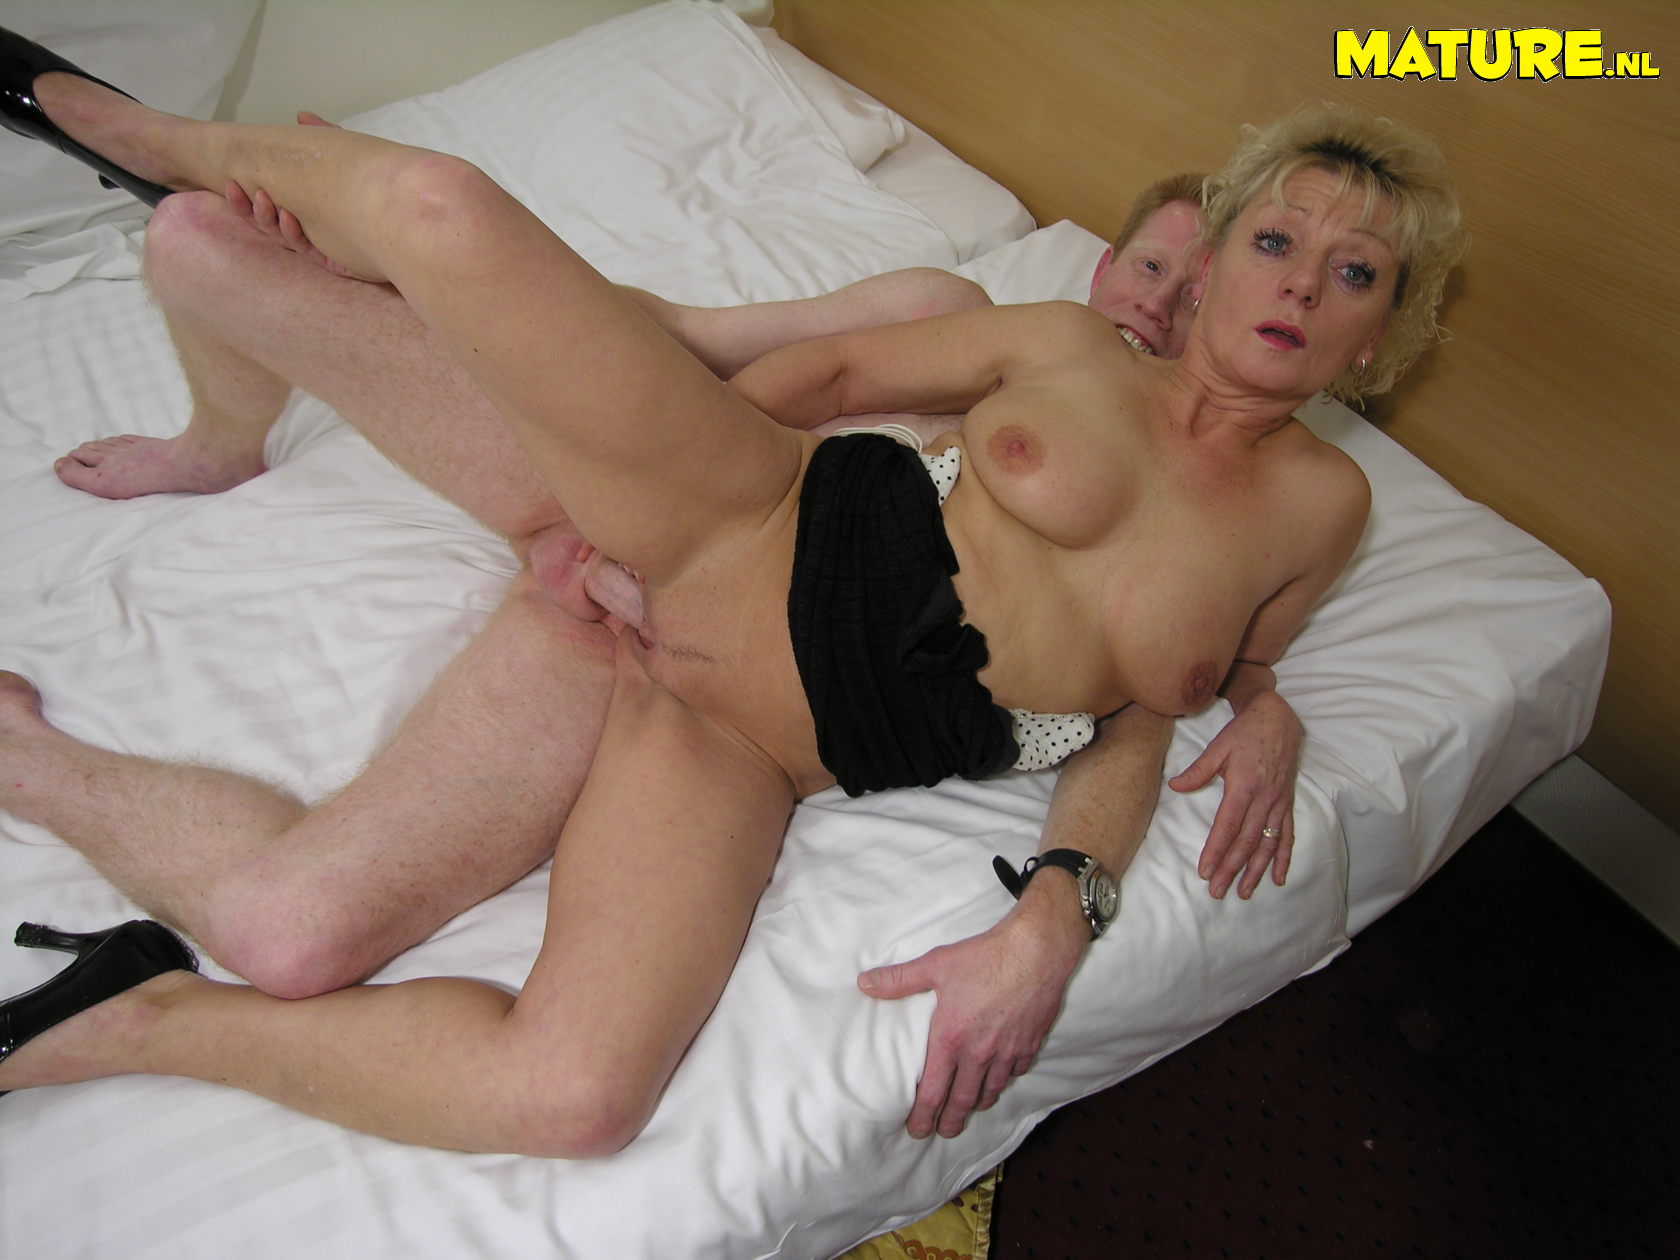 mature couples porn photos - couple - video xxx